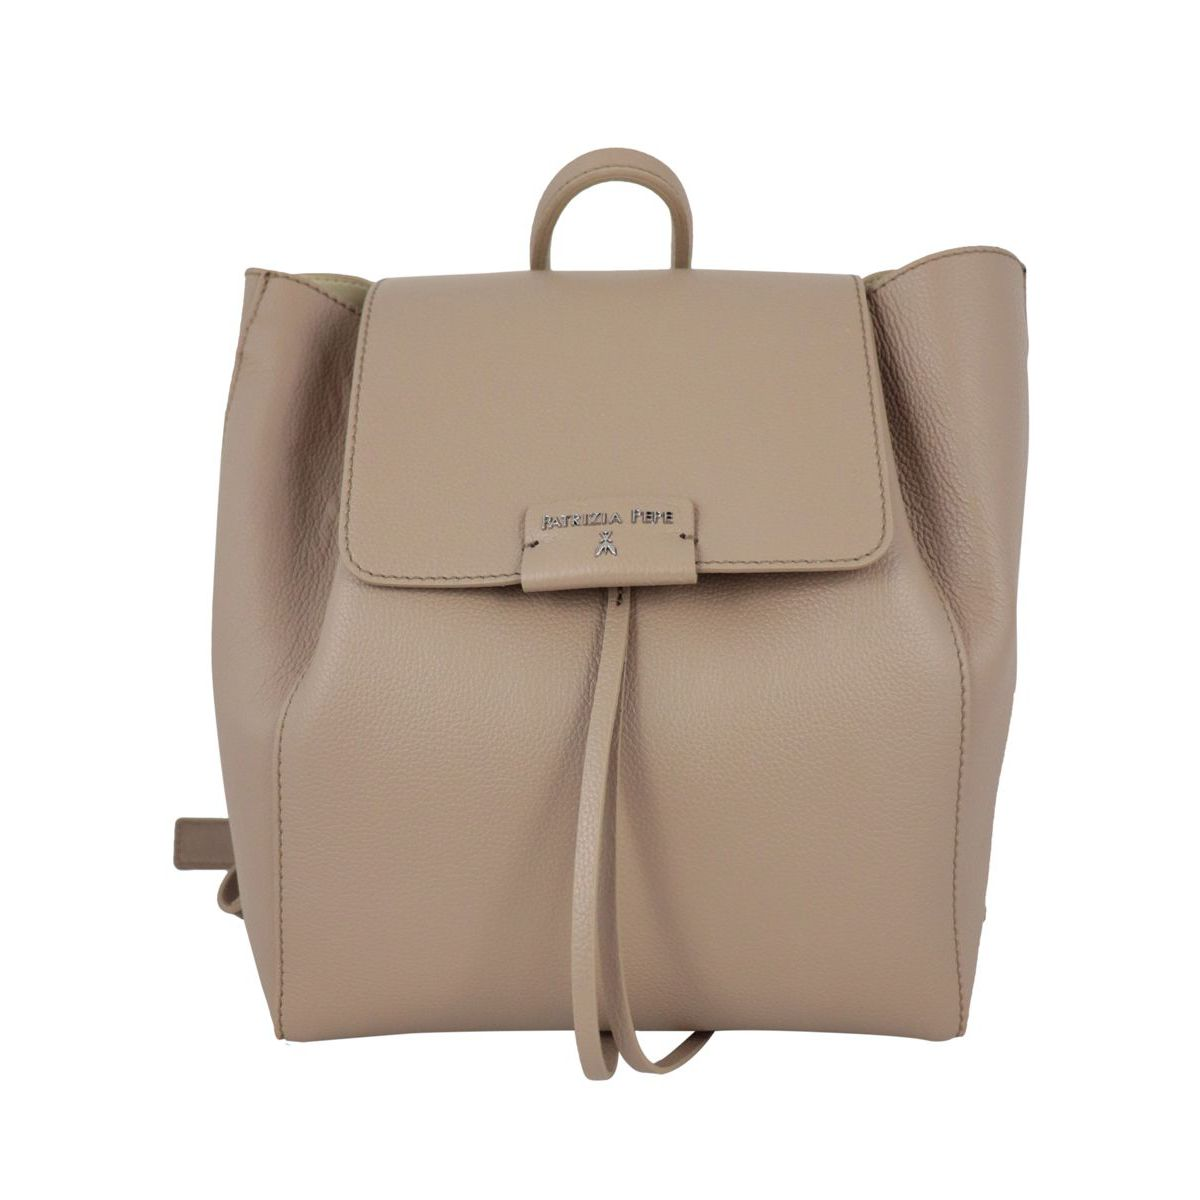 Textured leather backpack with logo Beige Patrizia Pepe